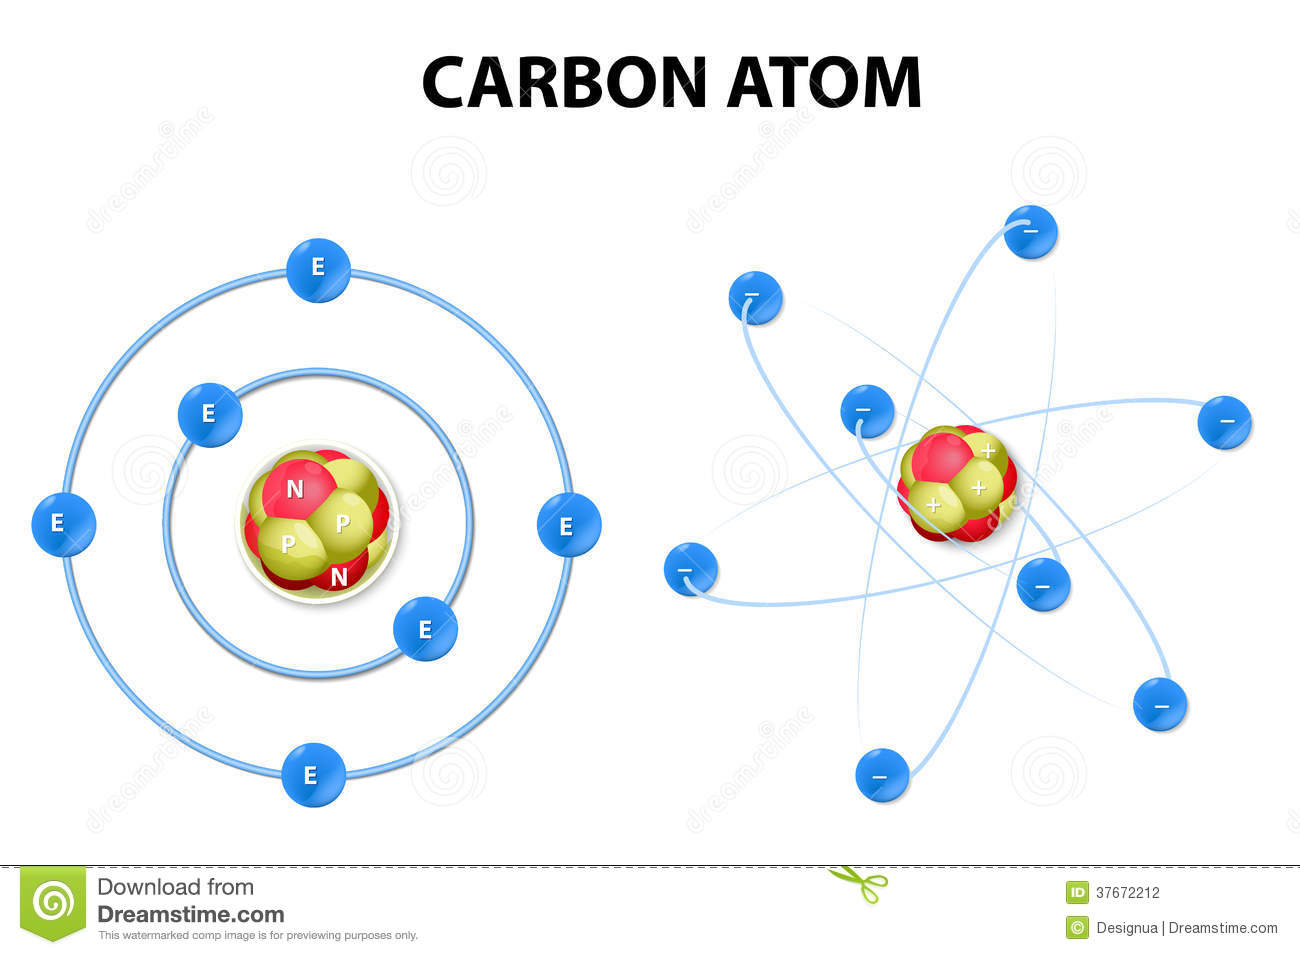 simple atom diagram gsxr 600 wiring carbon on white background structure stock